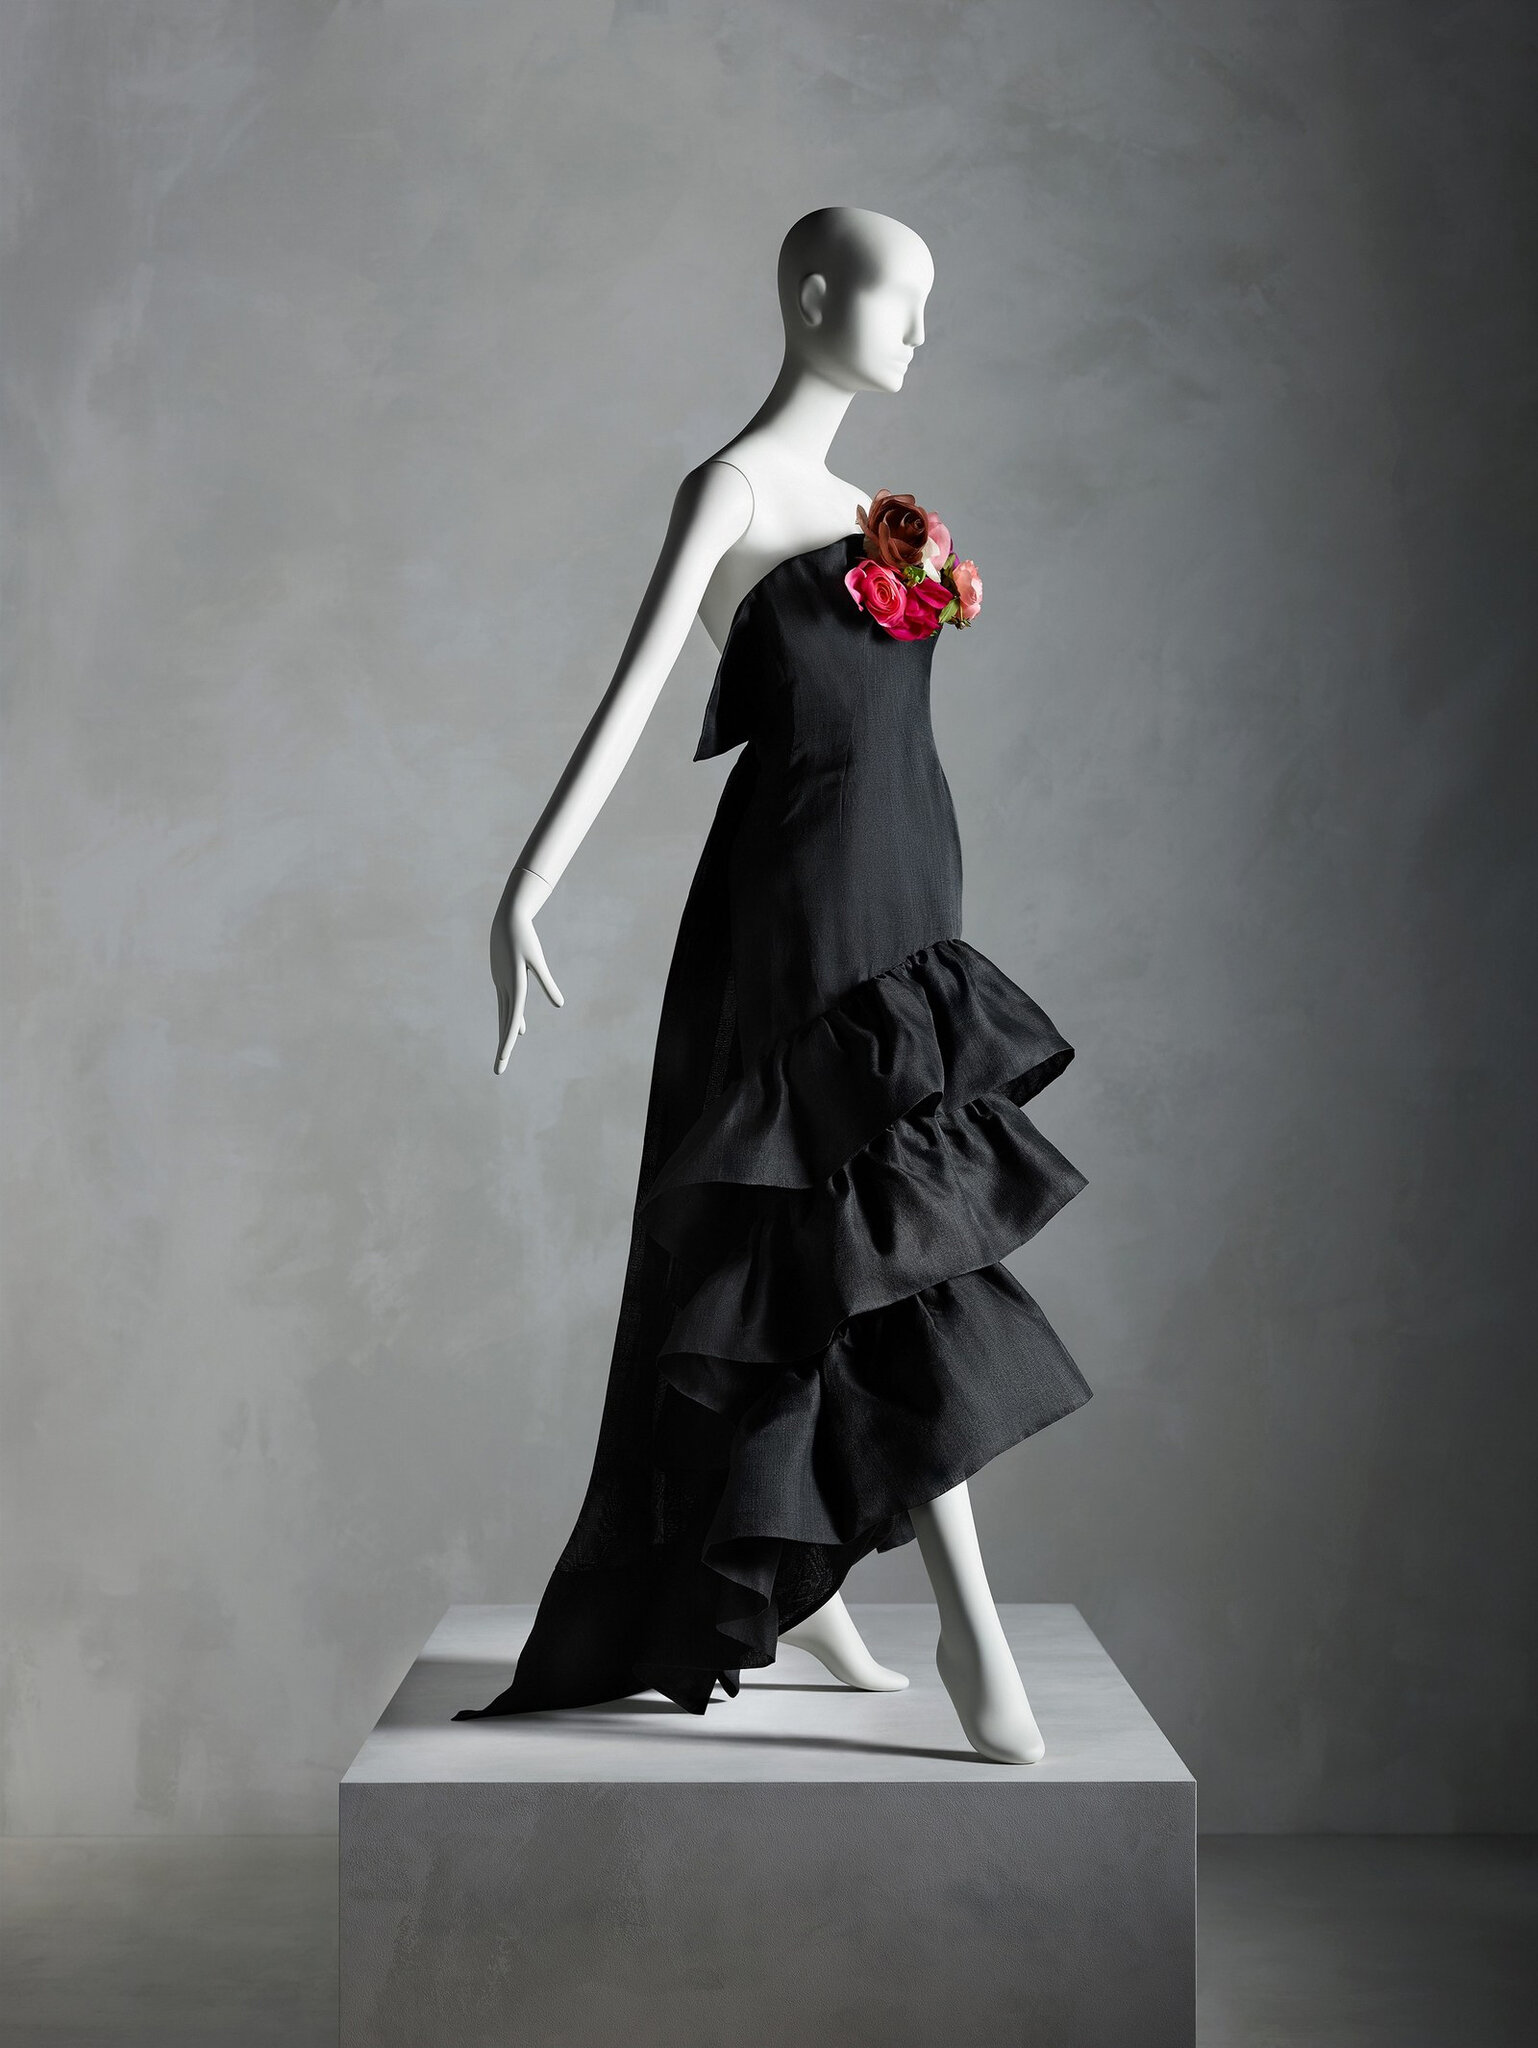 Evening Dress, Cristóbal Balenciaga (Spanish, 1895–1972) for House of Balenciaga (French, founded 1937), summer 1961; Promised gift of Sandy Schreier. Courtesy of the Metropolitan Museum of Art